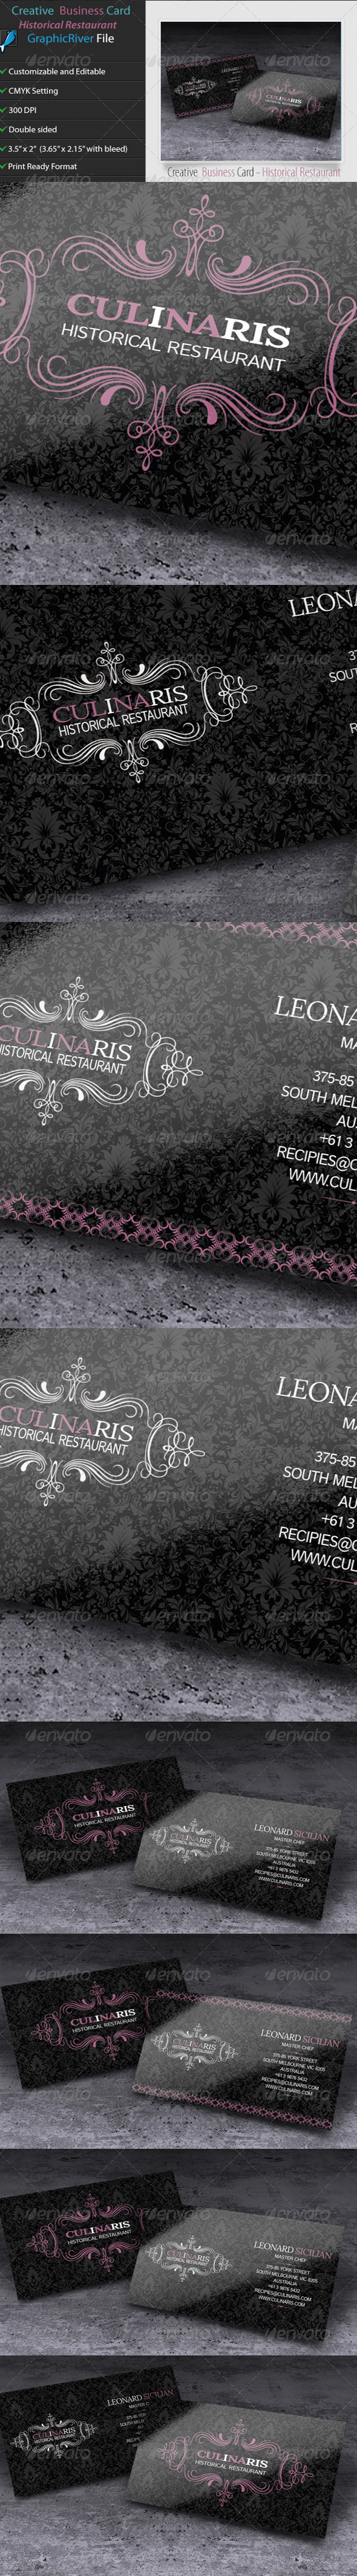 GraphicRiver Creative Business Card Culinaris 5680896